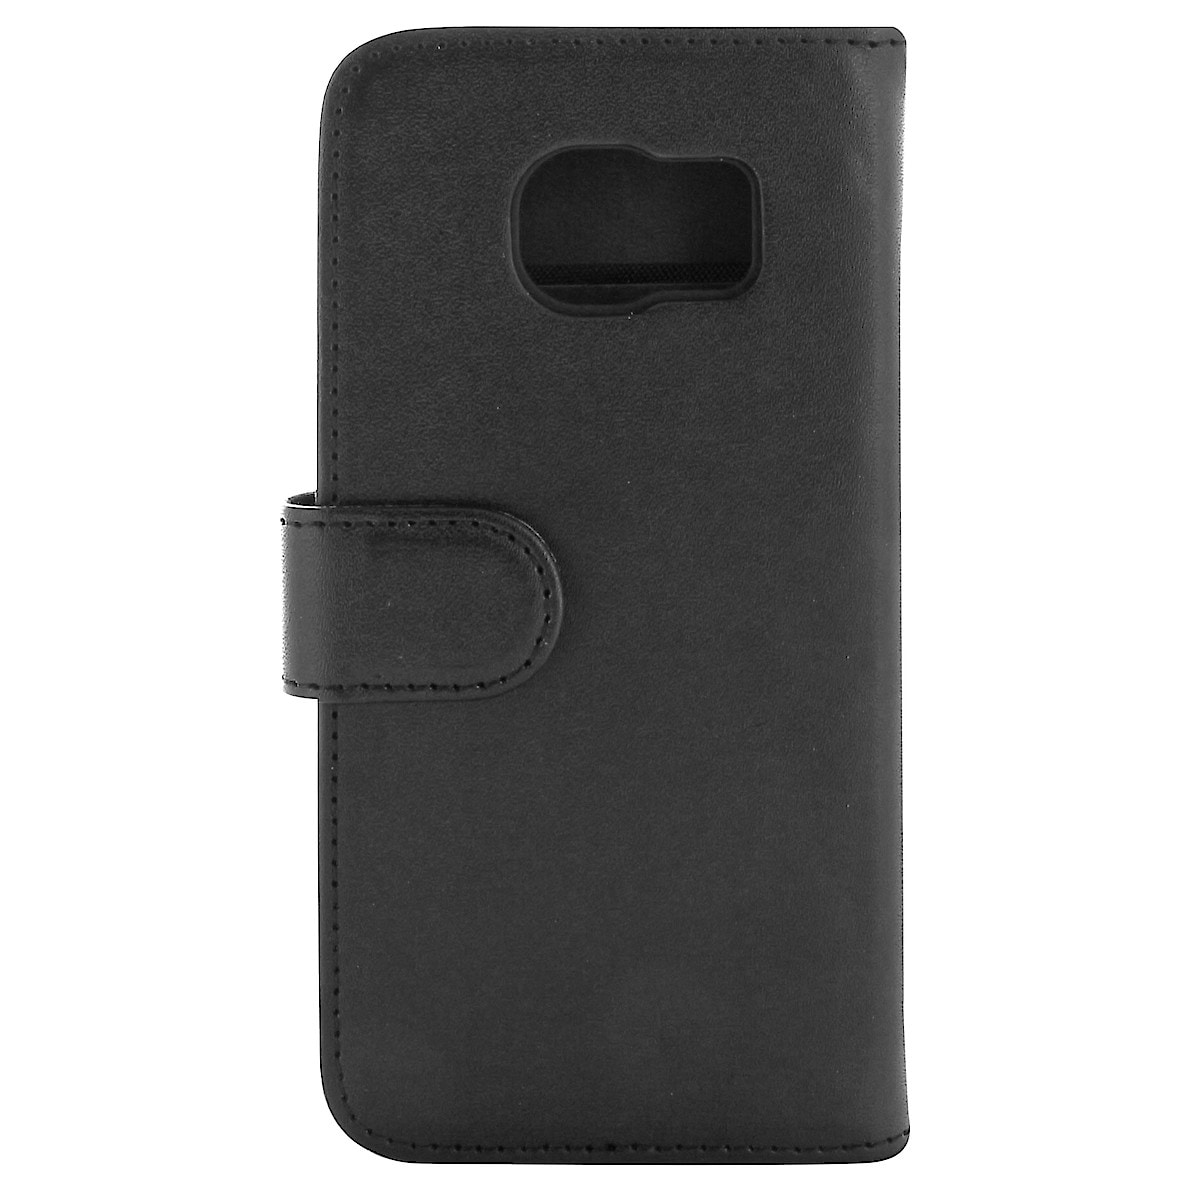 Holdit Wallet Case for Samsung Galaxy S6 Edge